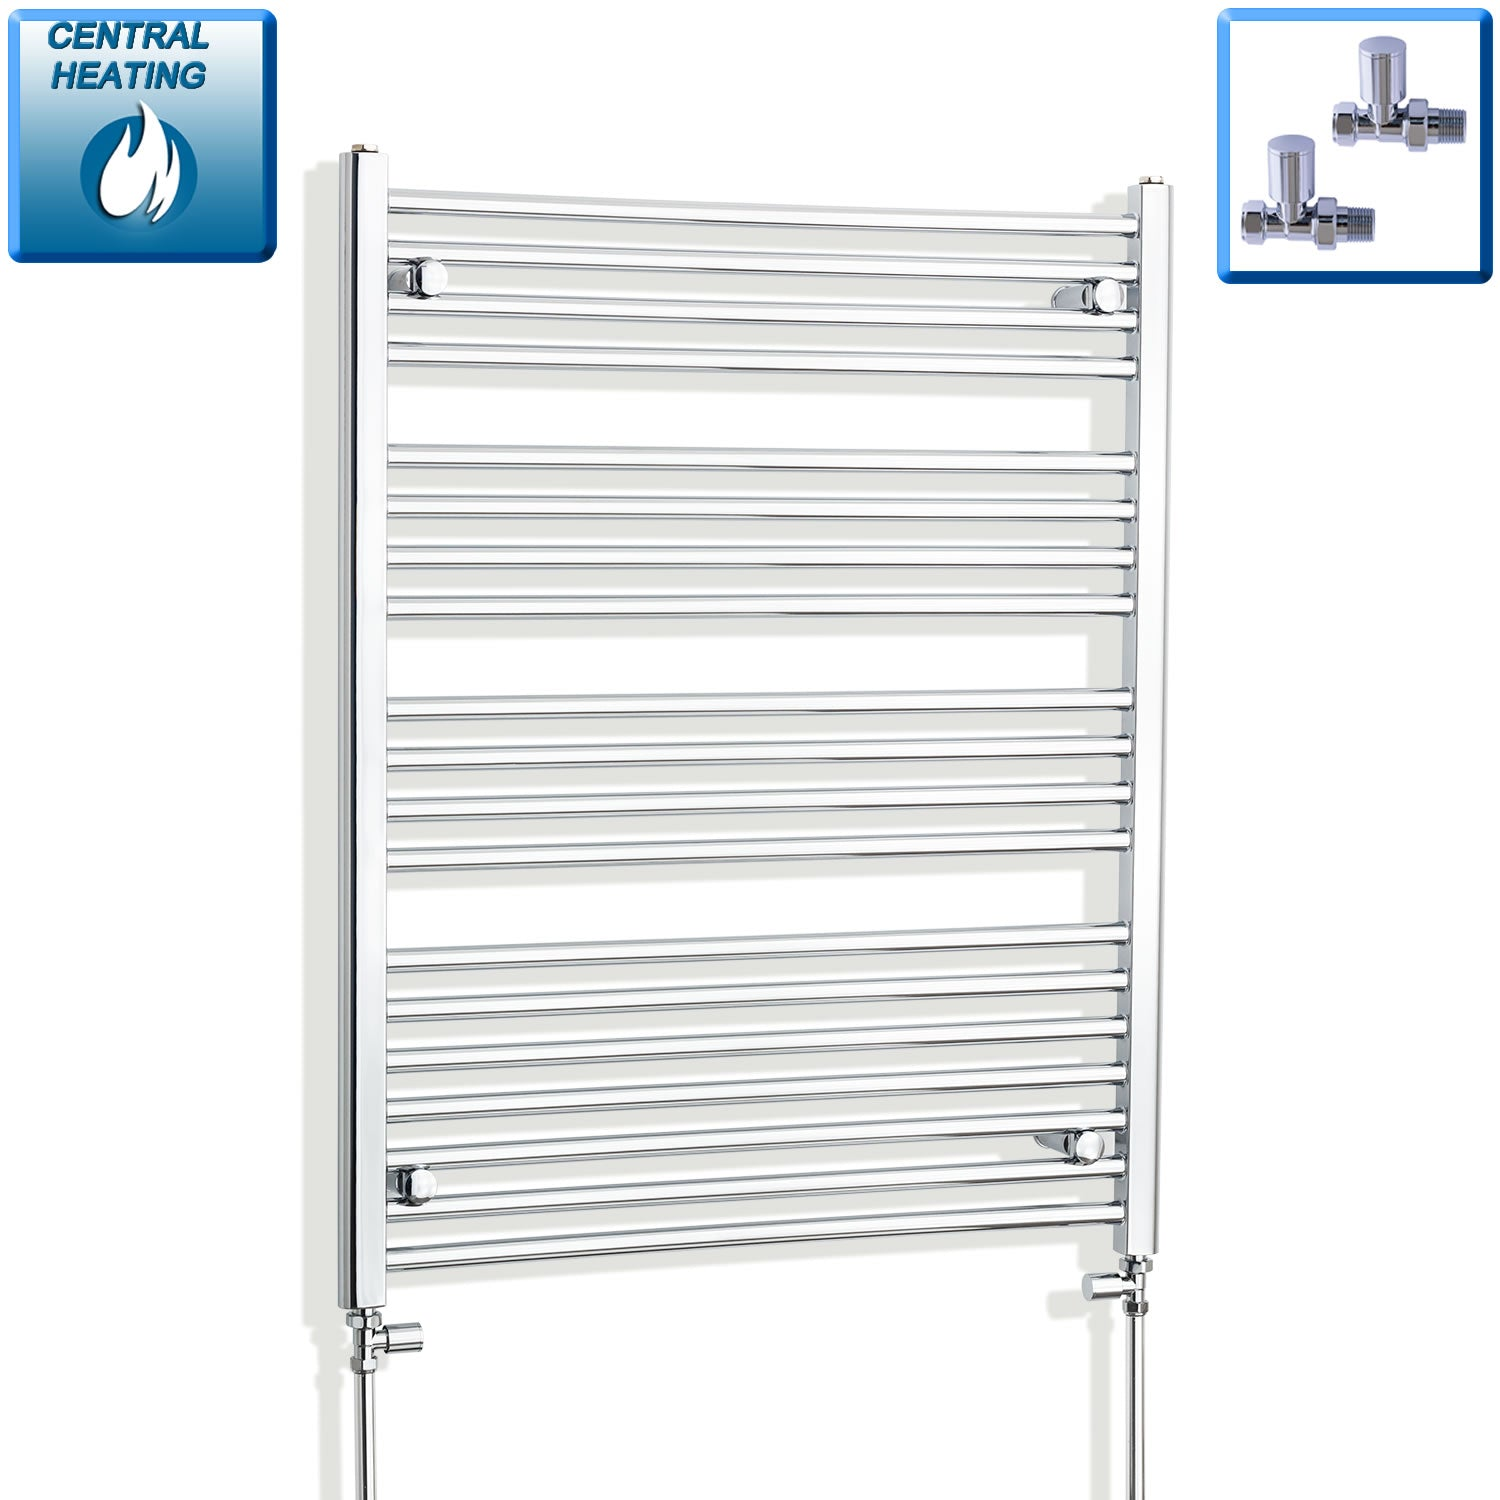 800mm Wide 1000mm High Flat Chrome Heated Towel Rail Radiator HTR,With Straight Valve